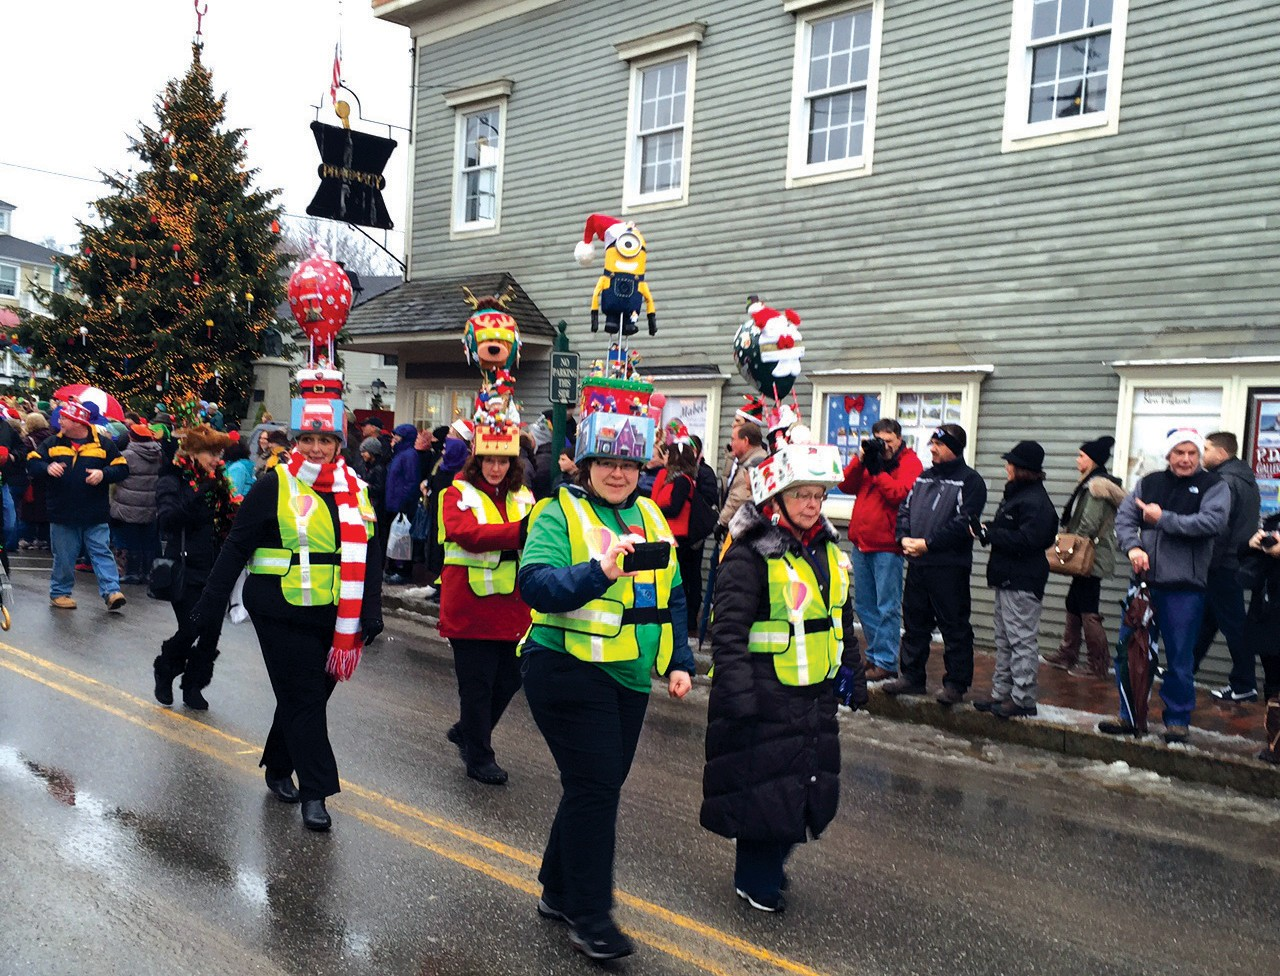 Participants of Kennebunkport's hat parade sport Christmasthemed hats in this Dec. 6, 2014 file photo. The parade is part of the town's annual Christmas Prelude festival. This year's parade will be this weekend.